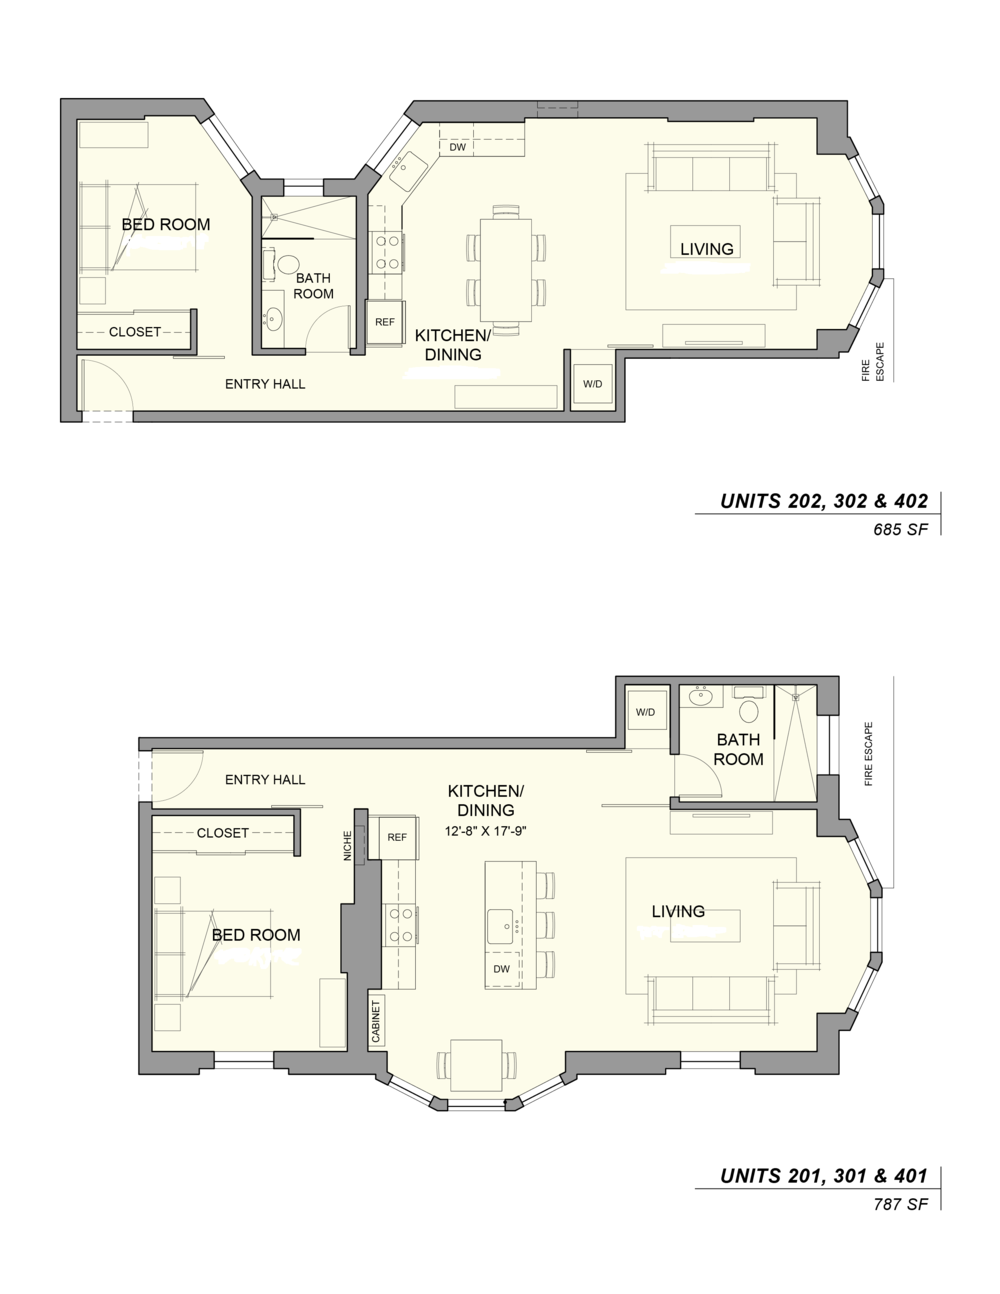 1501 Vine_FLOOR PLANS_07.20.15-02.png